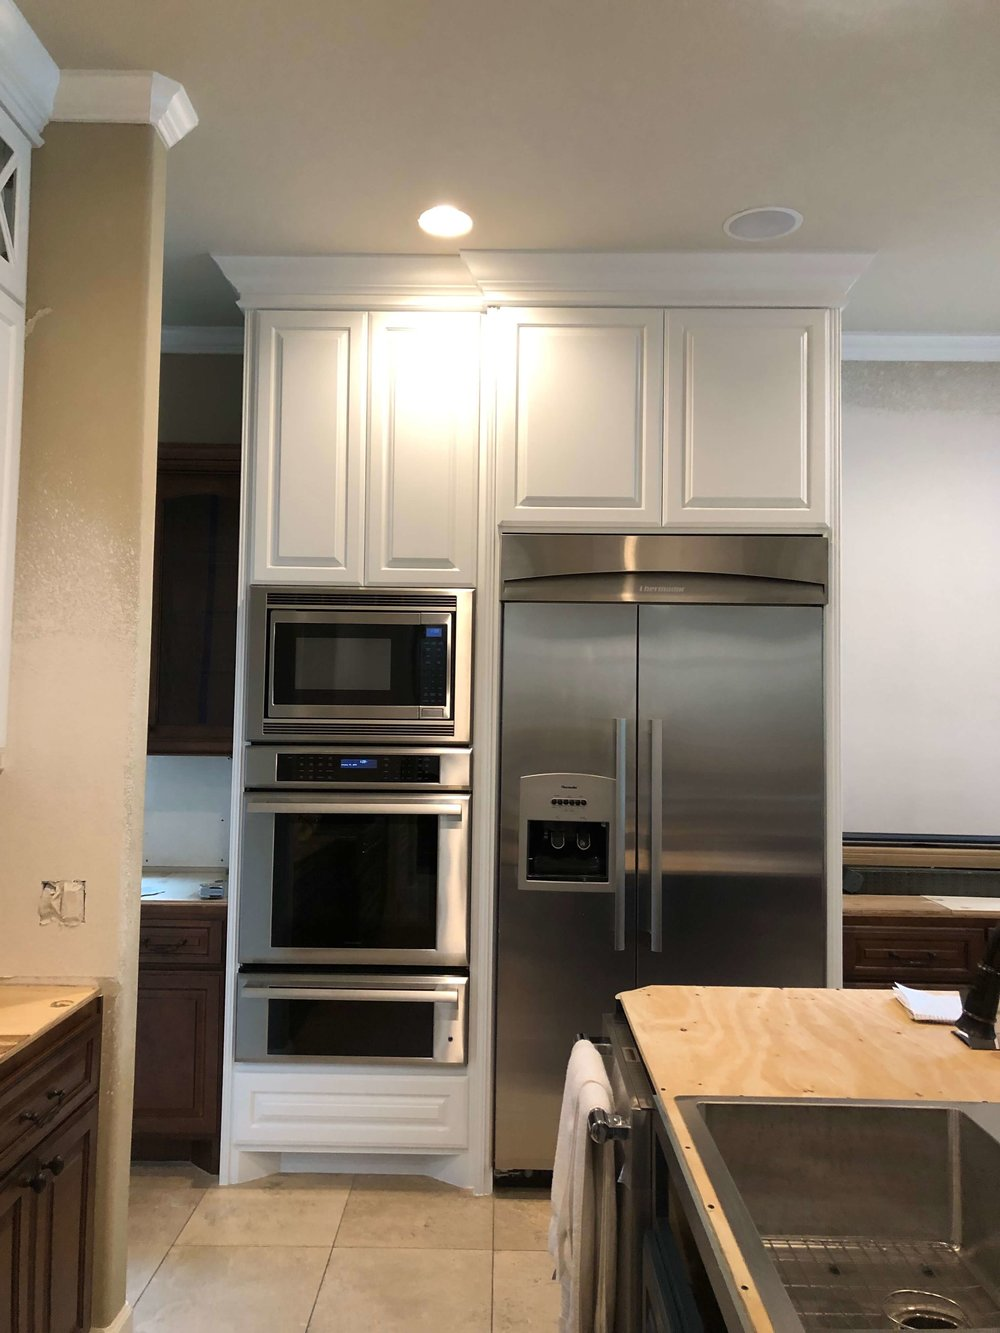 What To Upgrade In Your New Builder Home And What NOT To | Image: During Construction - Cabinets to the ceiling render a lot more extra storage and visual height to the space